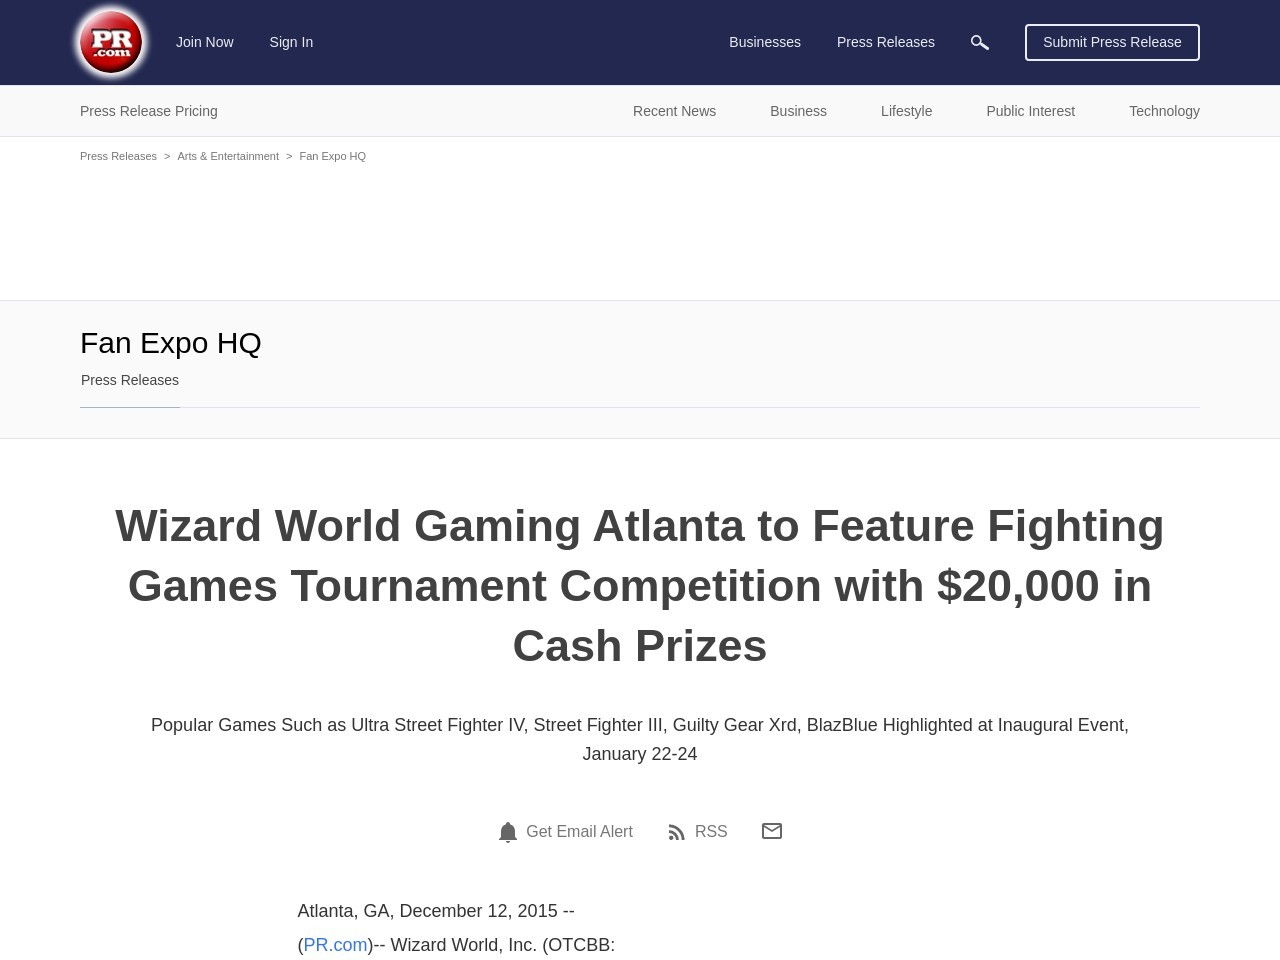 Wizard World Gaming Atlanta to Feature Fighting Games Tournament Competition …